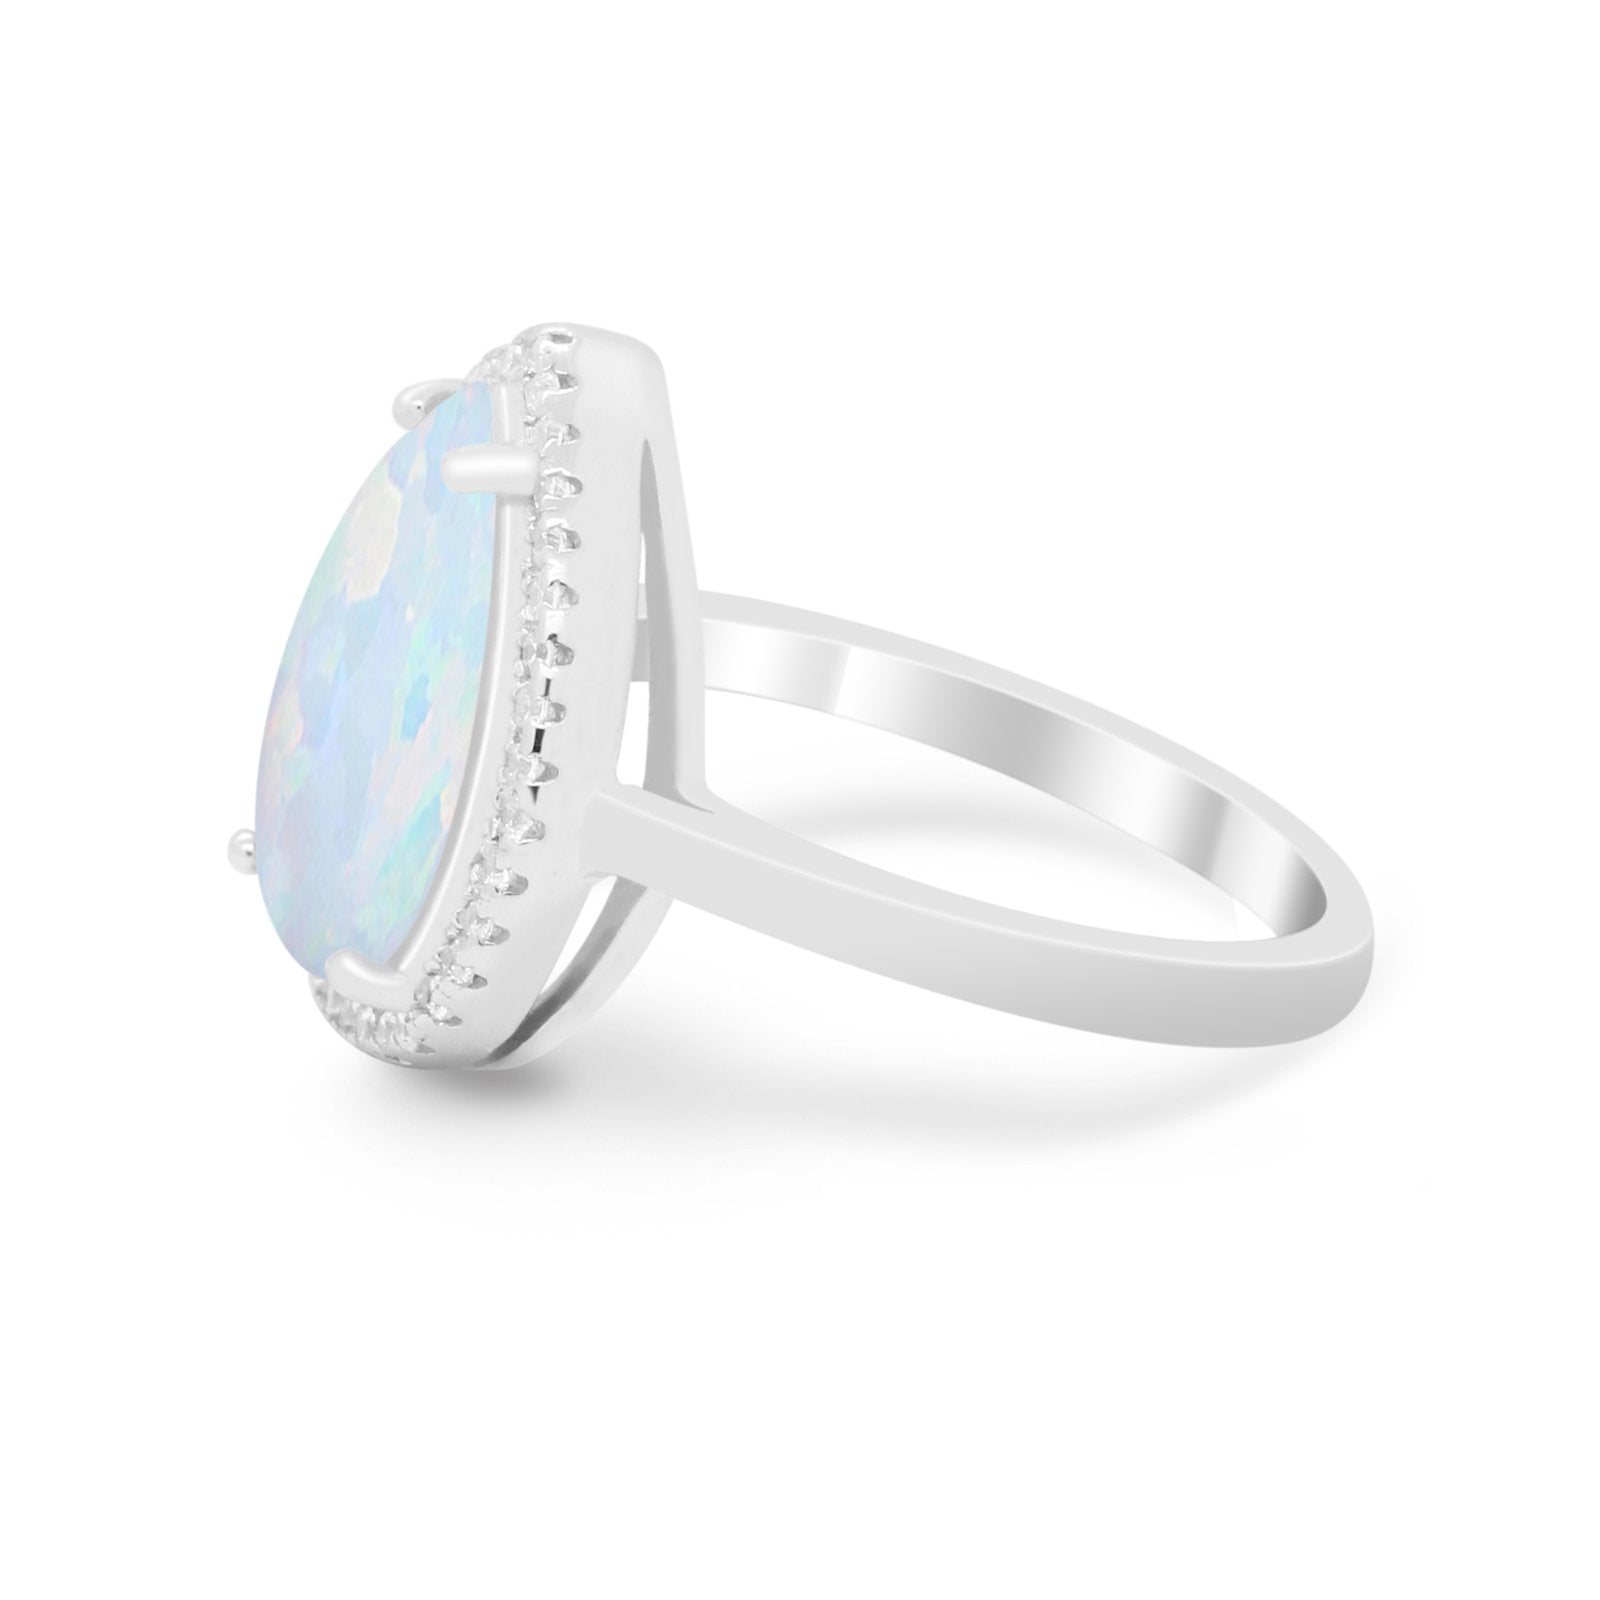 Halo Teardrop Wedding Ring Pear Round Lab Created White Opal 925 Sterling Silver